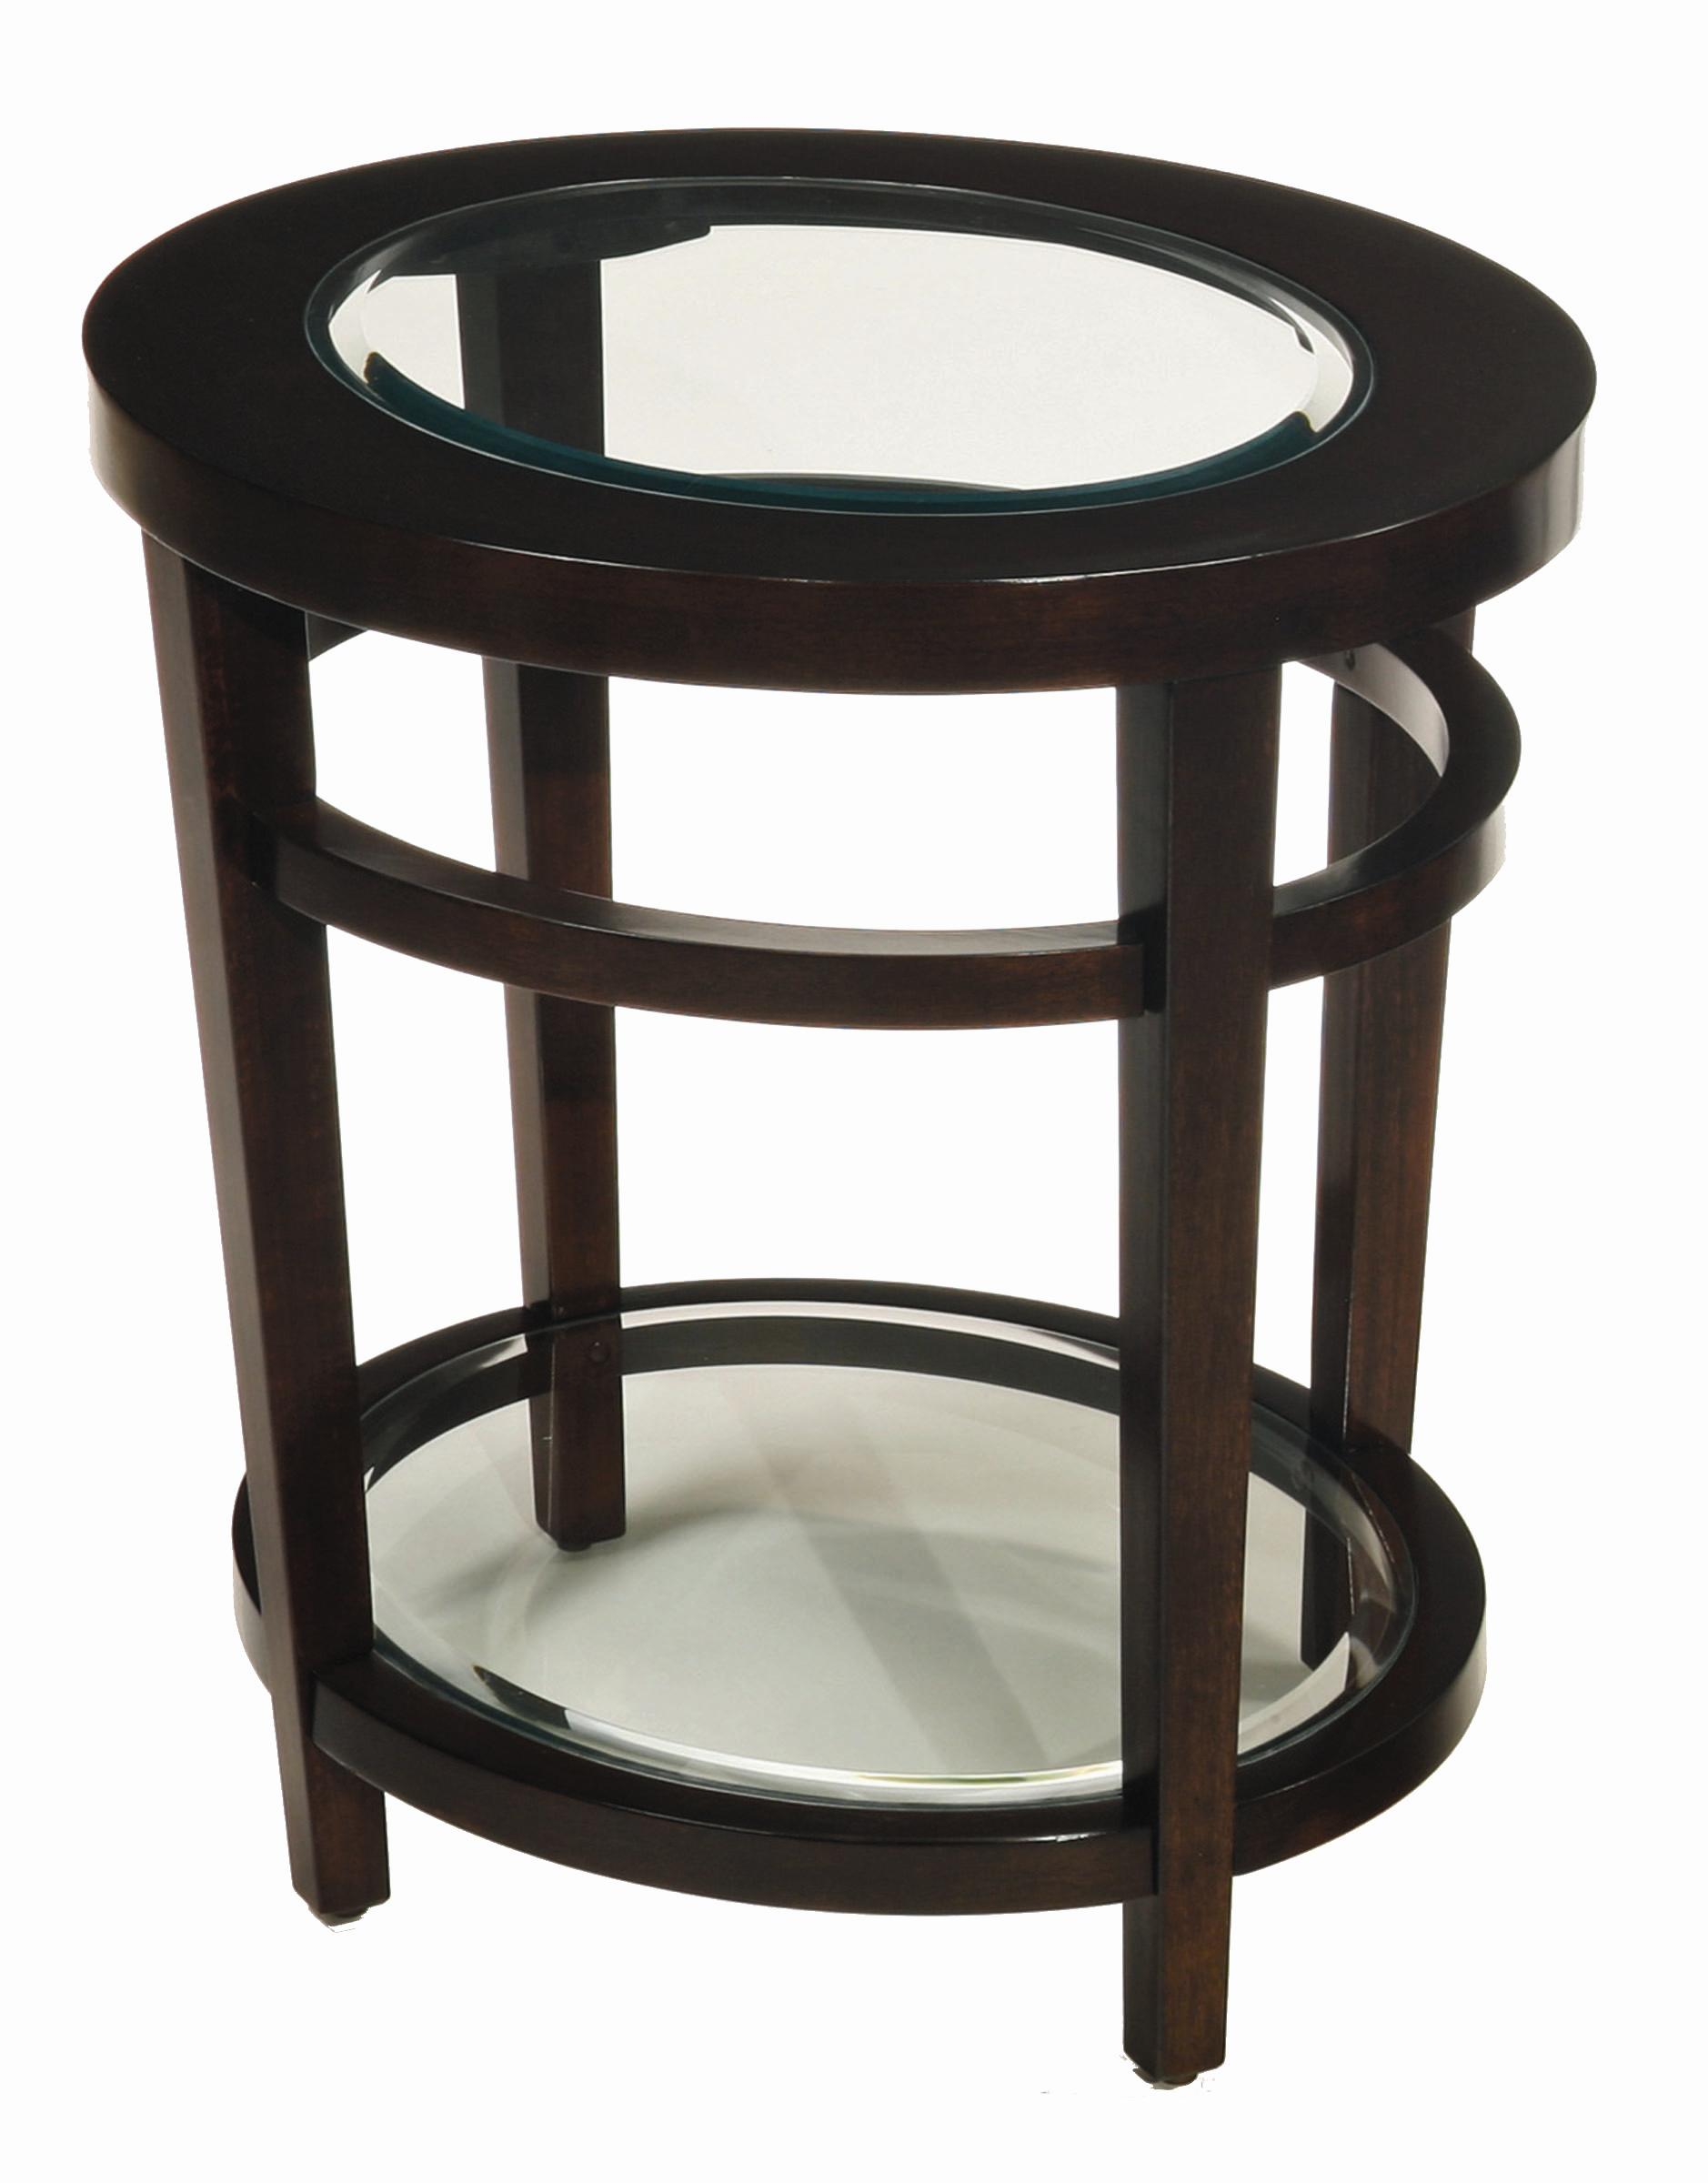 Atwell Atwell Ave End Table by Hammary at Morris Home